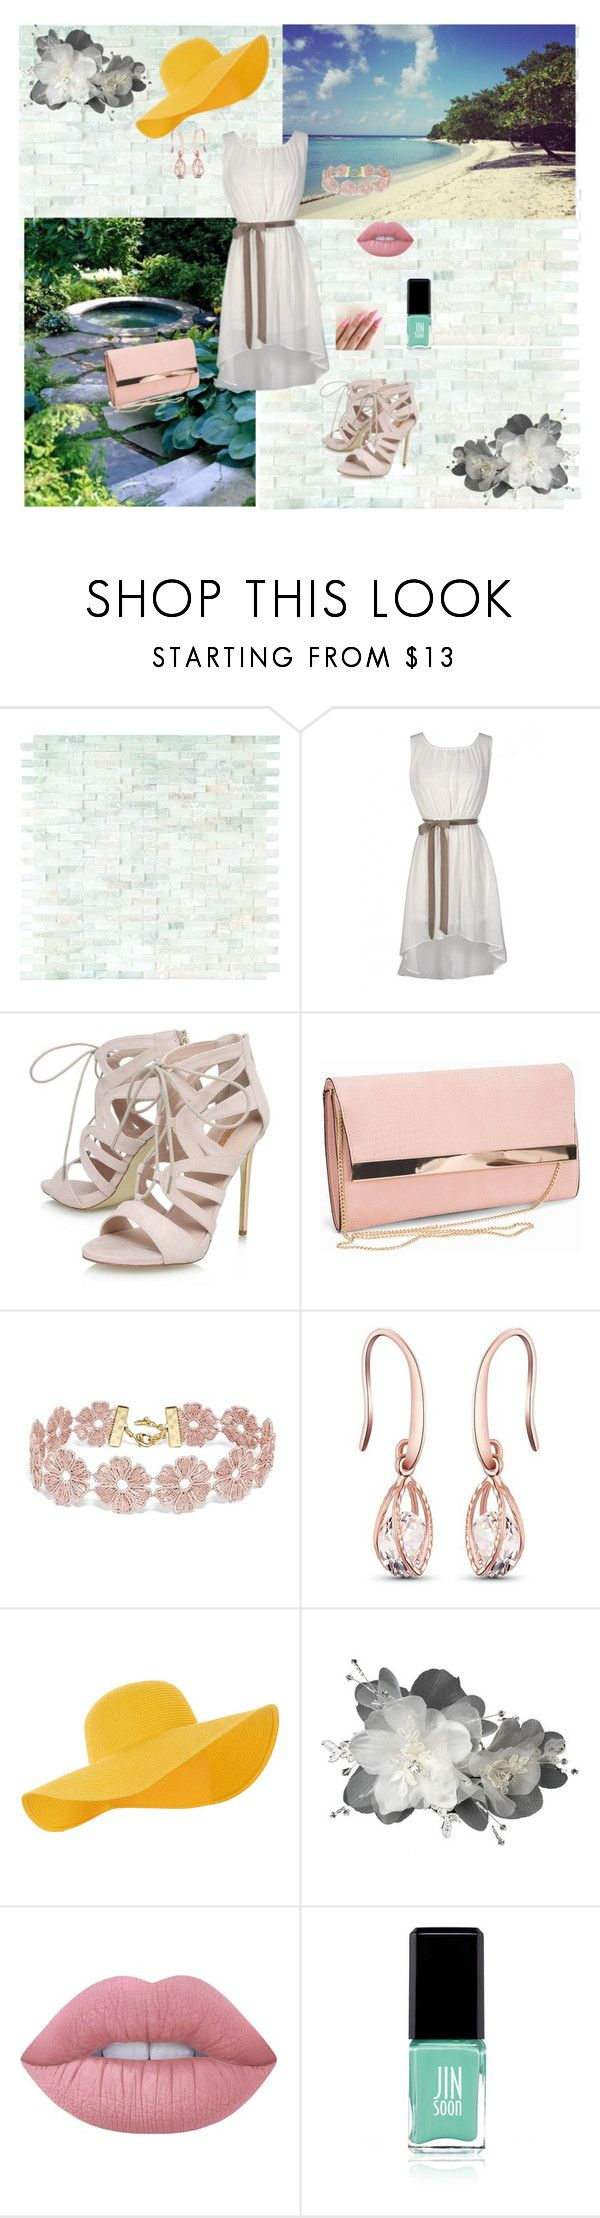 """Beach"" by camiah-mattocks ❤ liked on Polyvore featuring WALL, Carvela, New Look, BaubleBar, Accessorize, Lime Crime and Jin Soon"